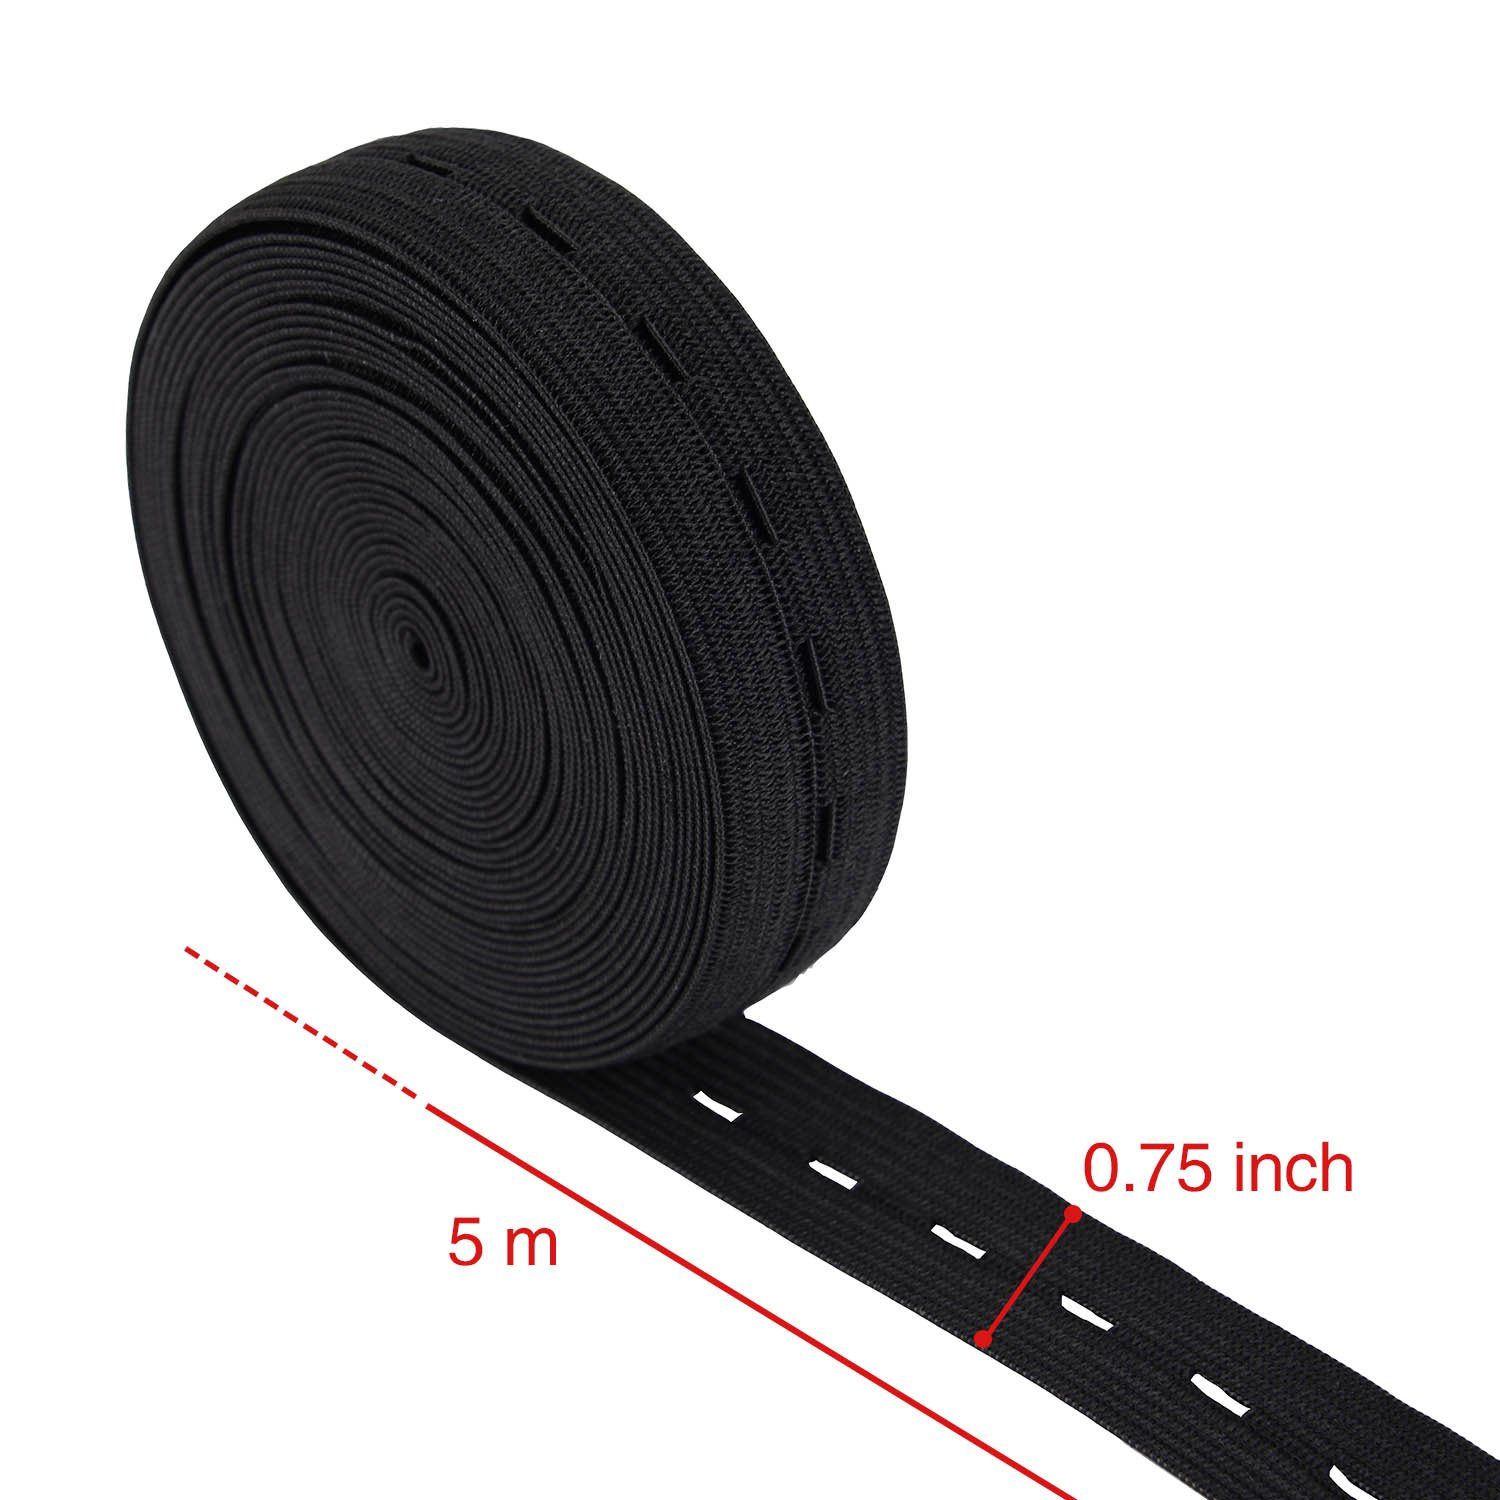 Outus 11 Yard Elastic Bands Spool Sewing Band Flat Elastic Cord with Buttonhole 2 Pack 5.5 Yard of White and 5.5 Yard of Black 3//4 Inch